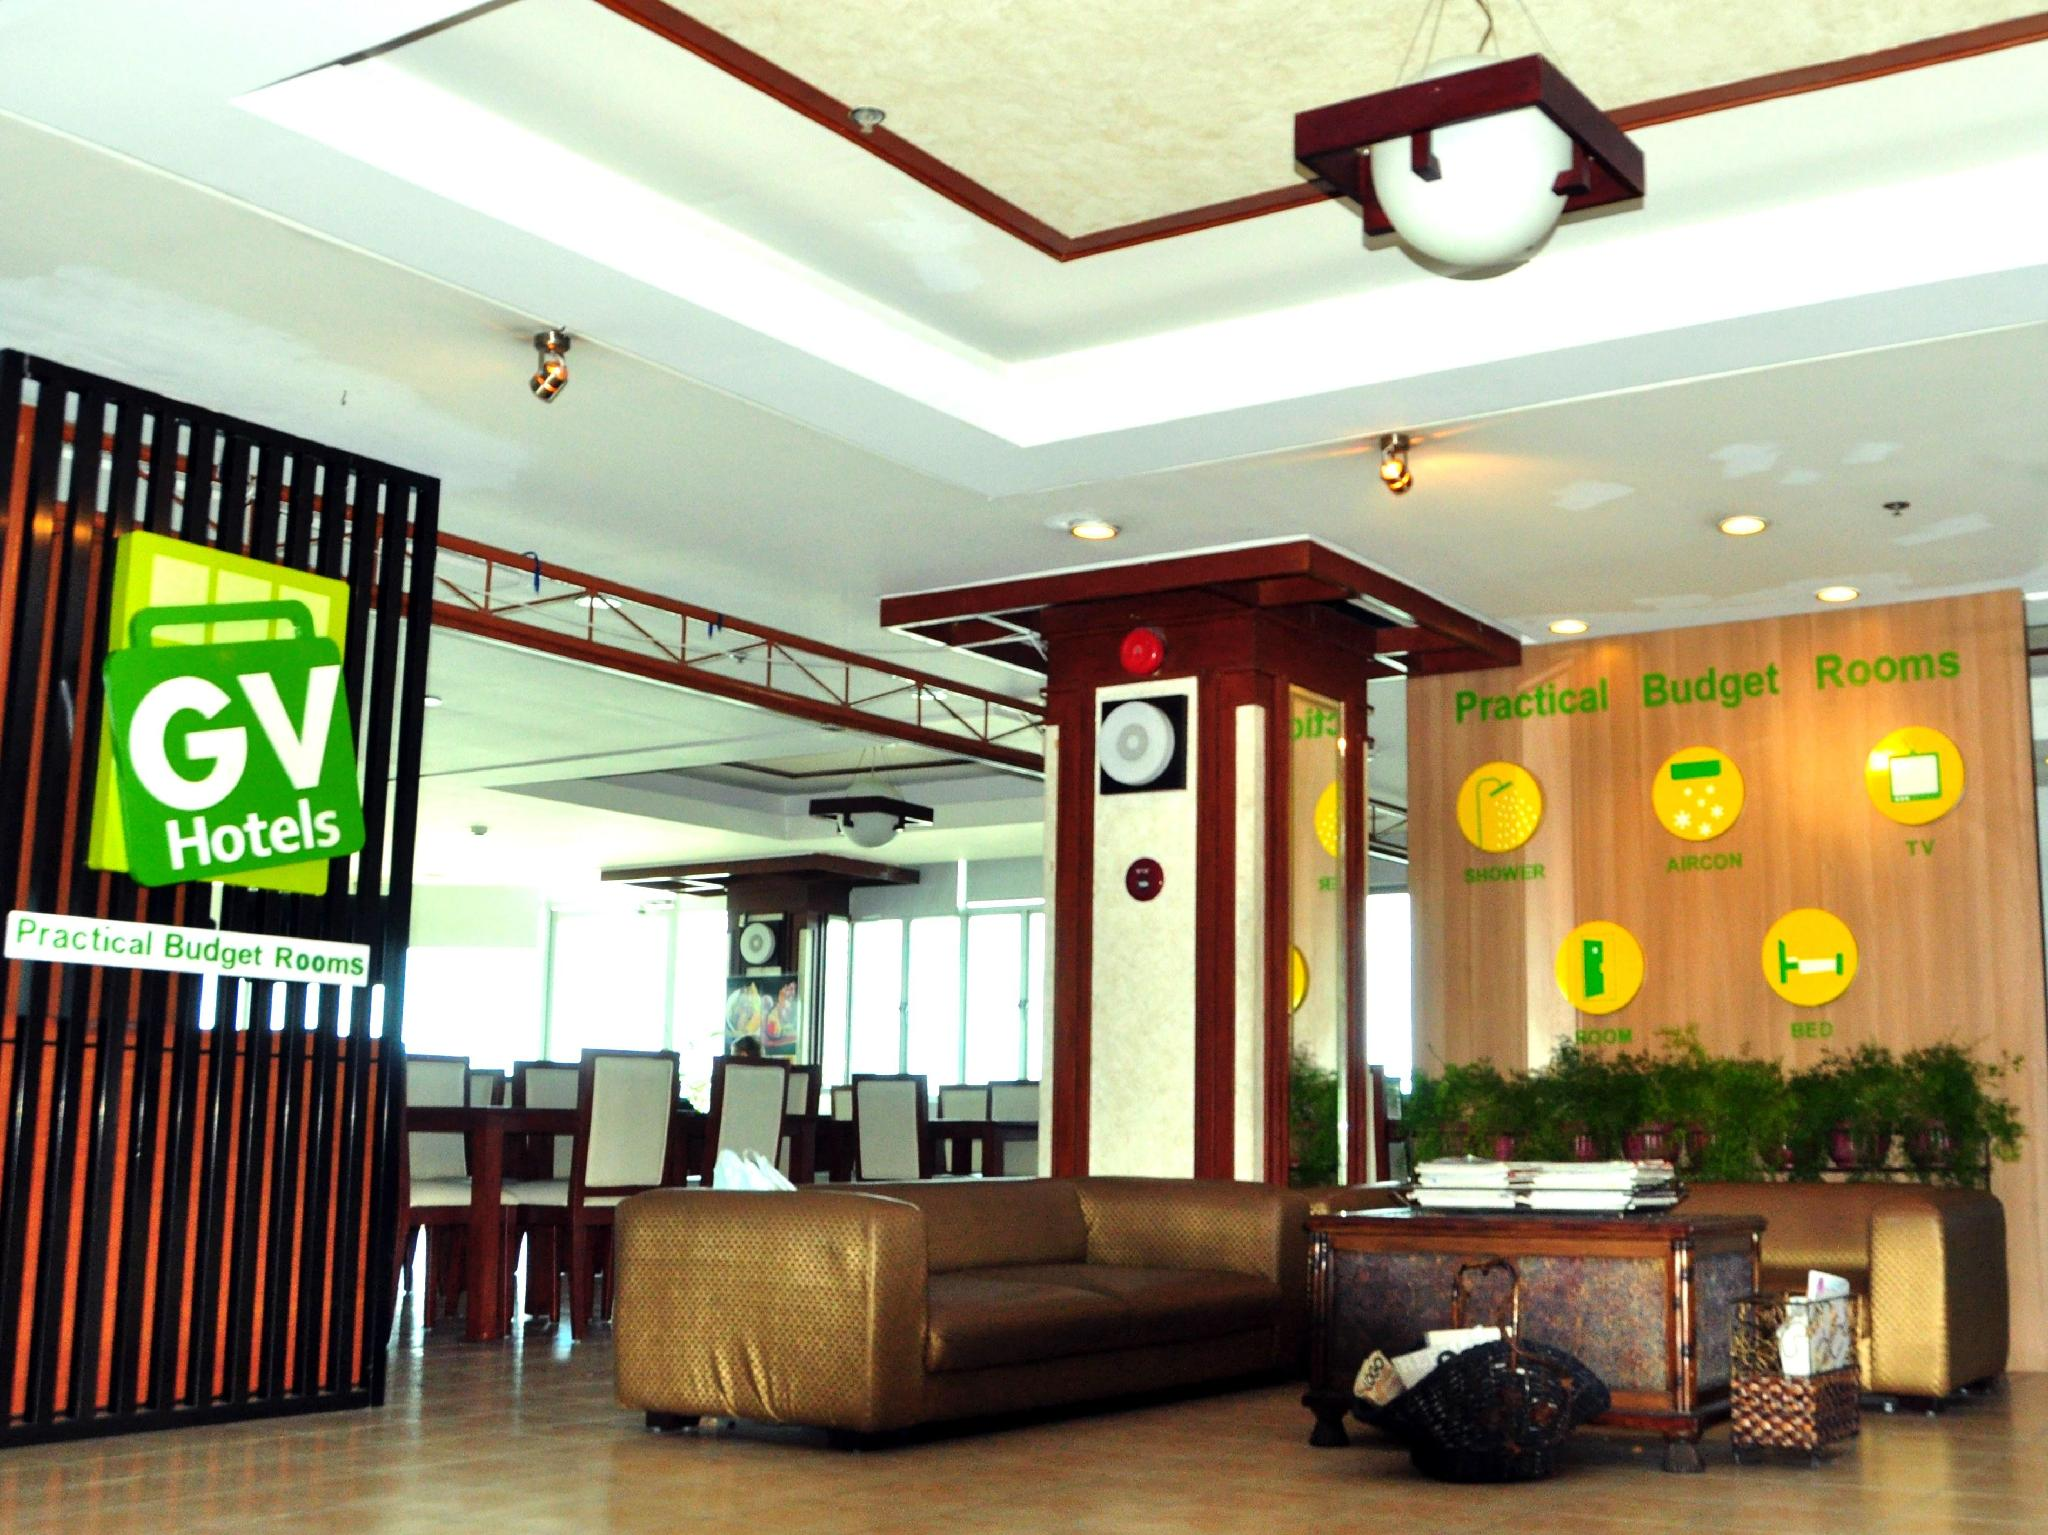 GV Tower Hotel 세부